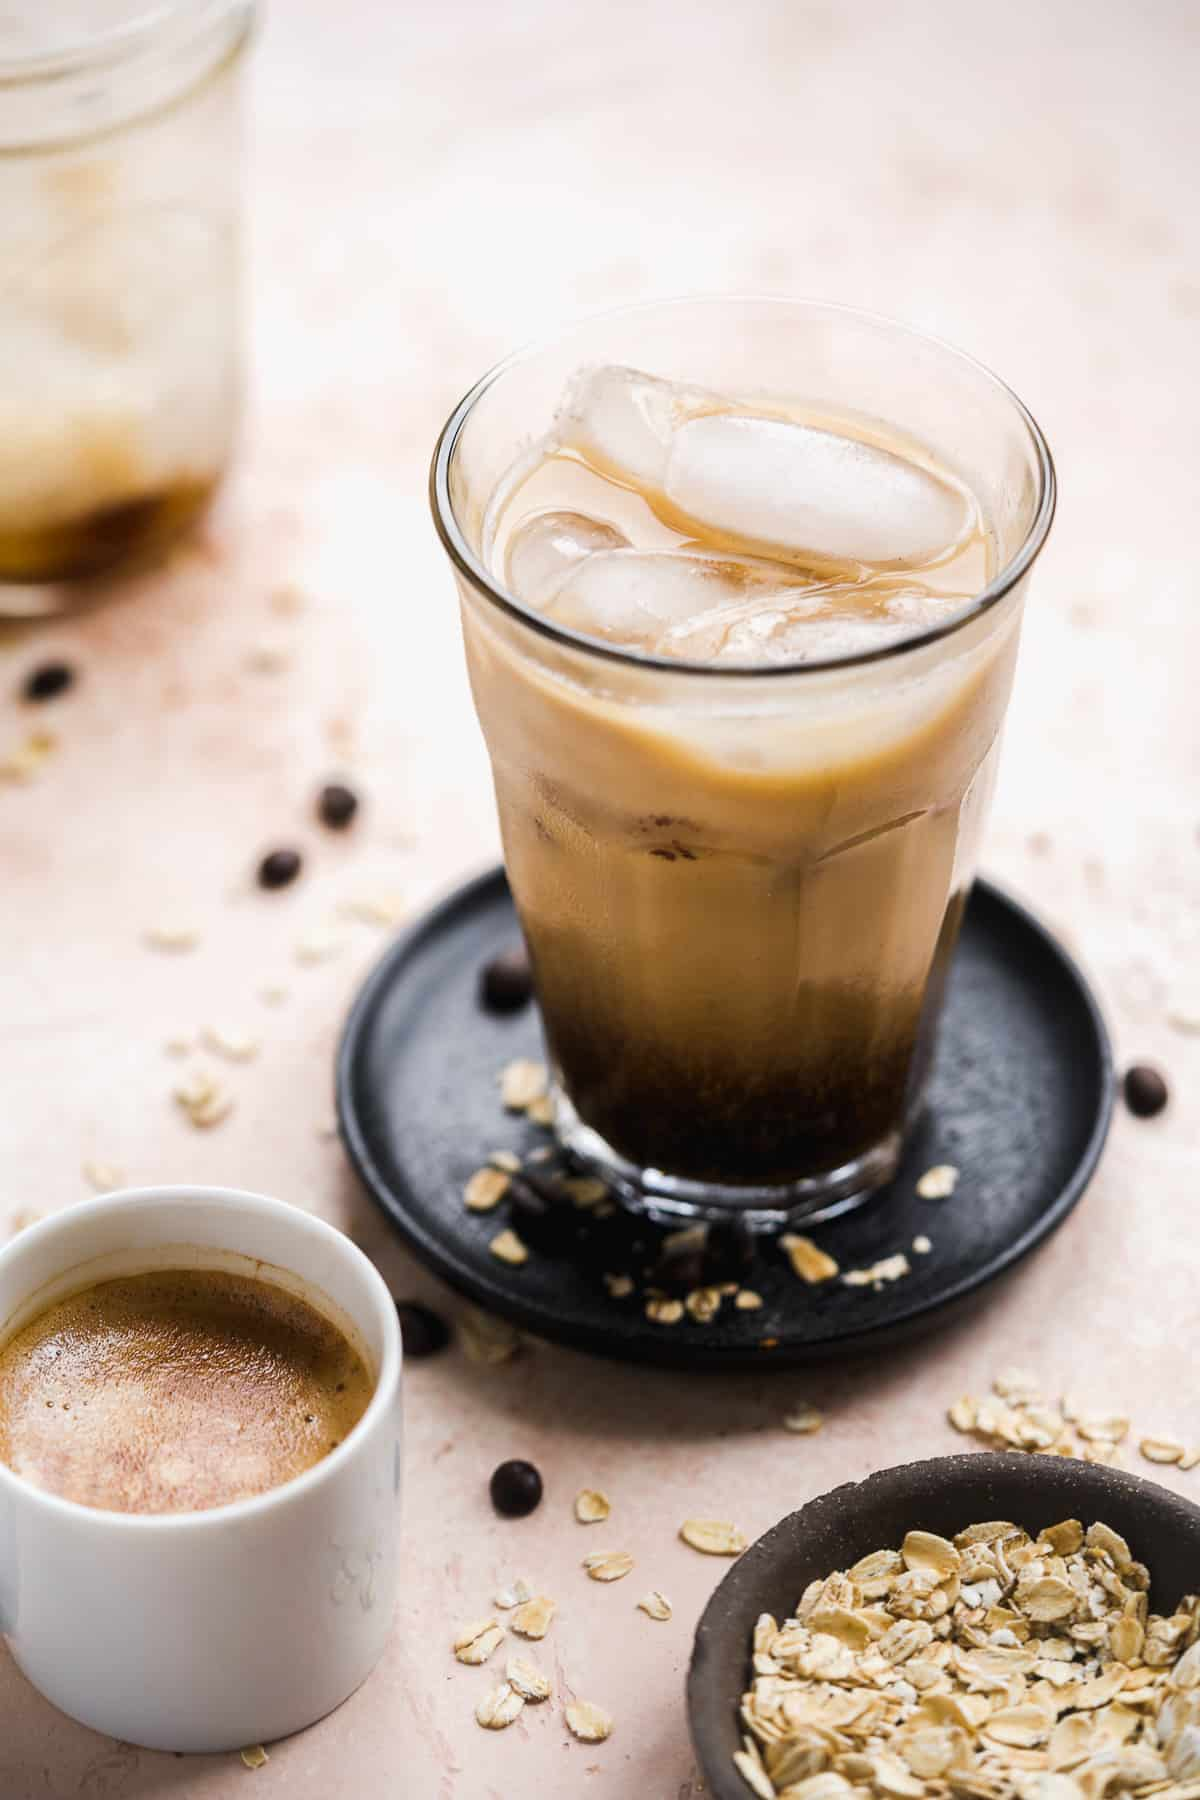 Glass filled with coffee and milk over ice sitting on a black coaster.